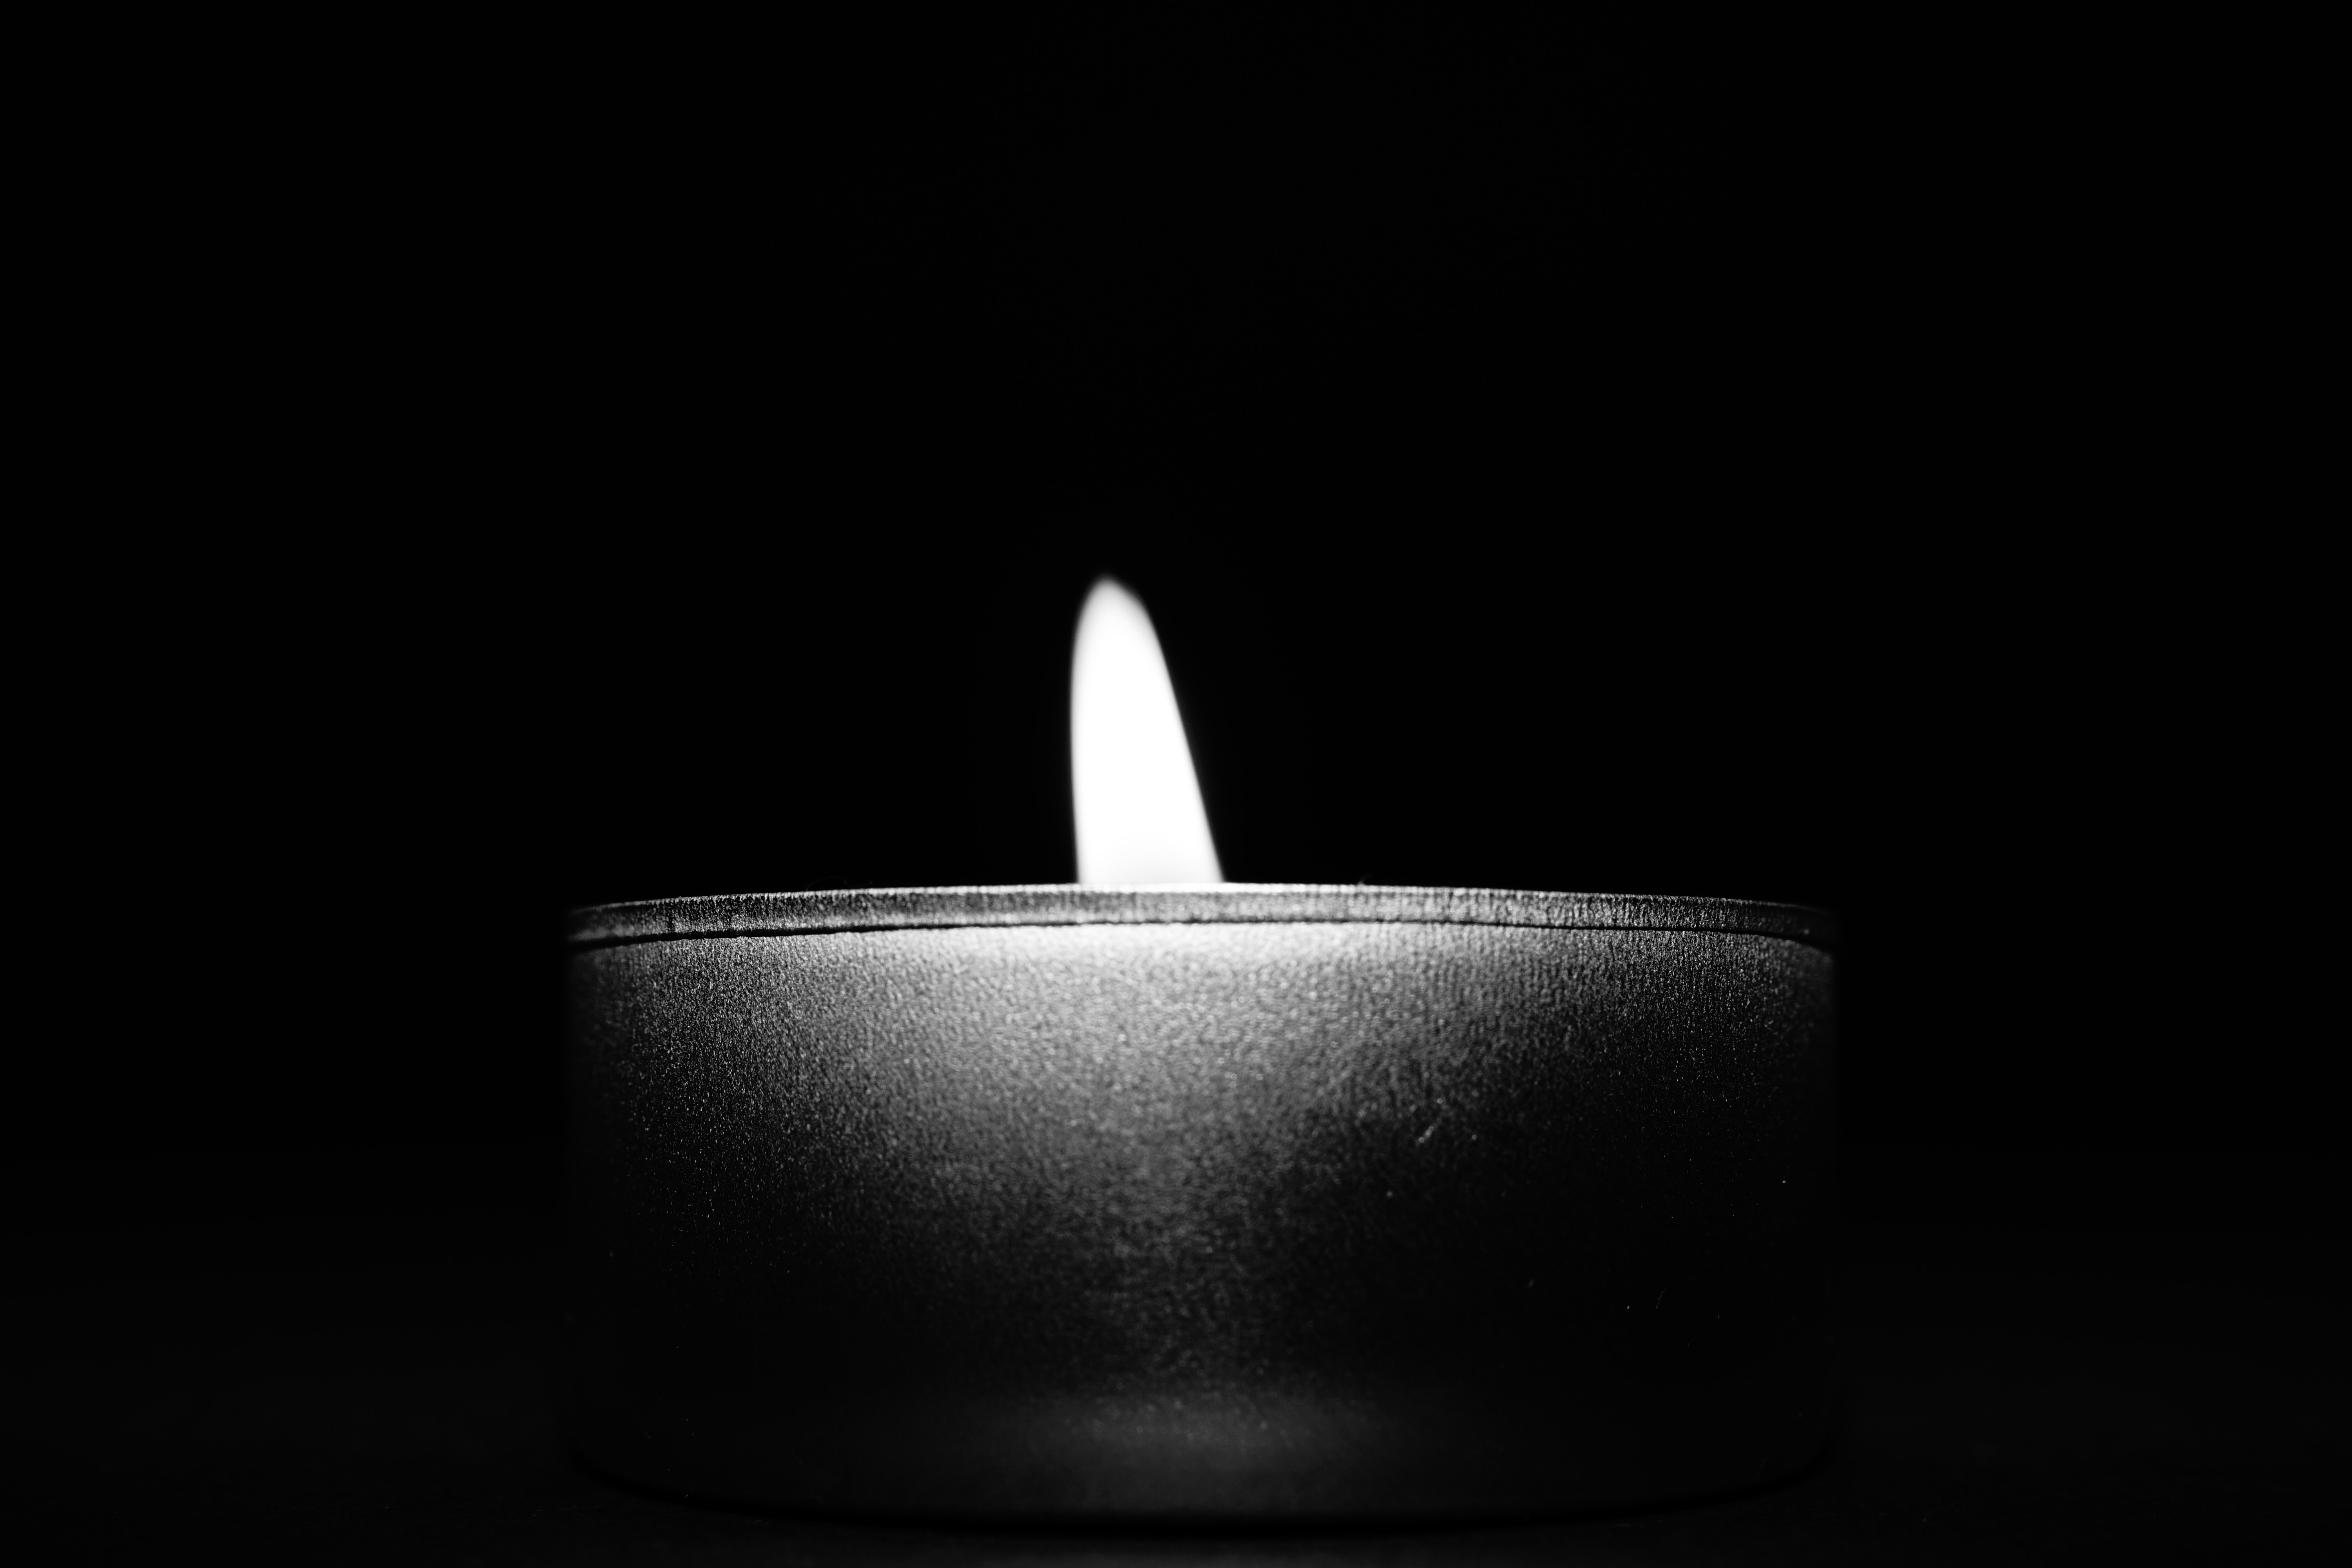 Close-up of Candle over Black Background · Free Stock Photo